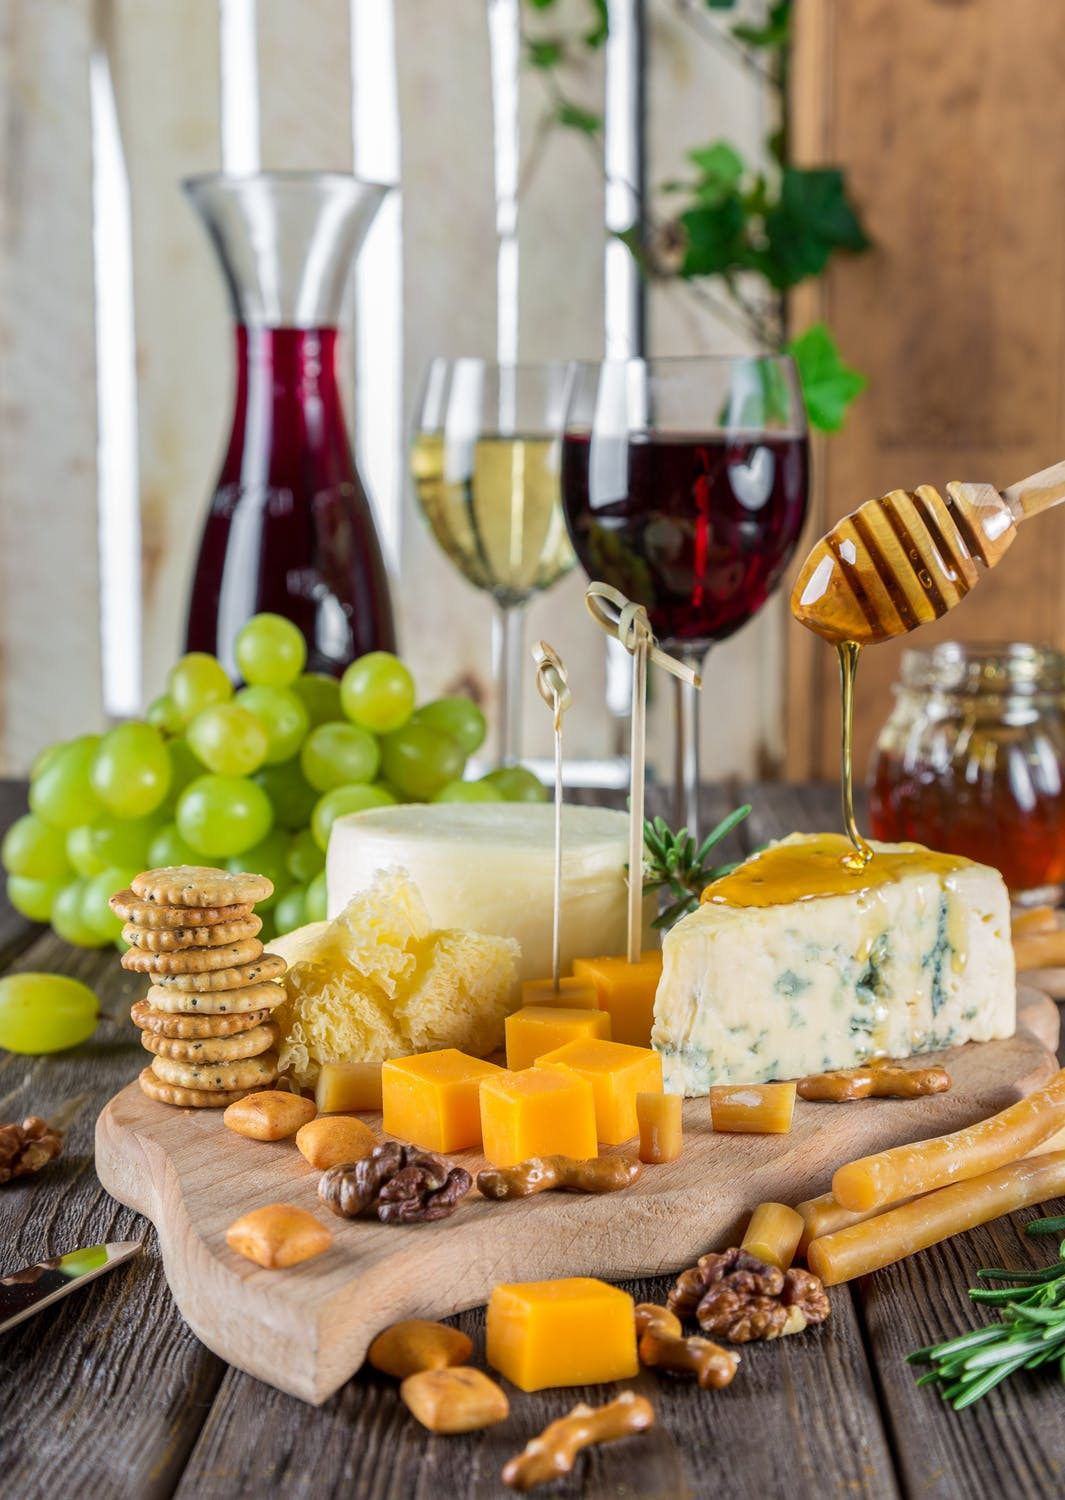 Taster session with cheese and wine